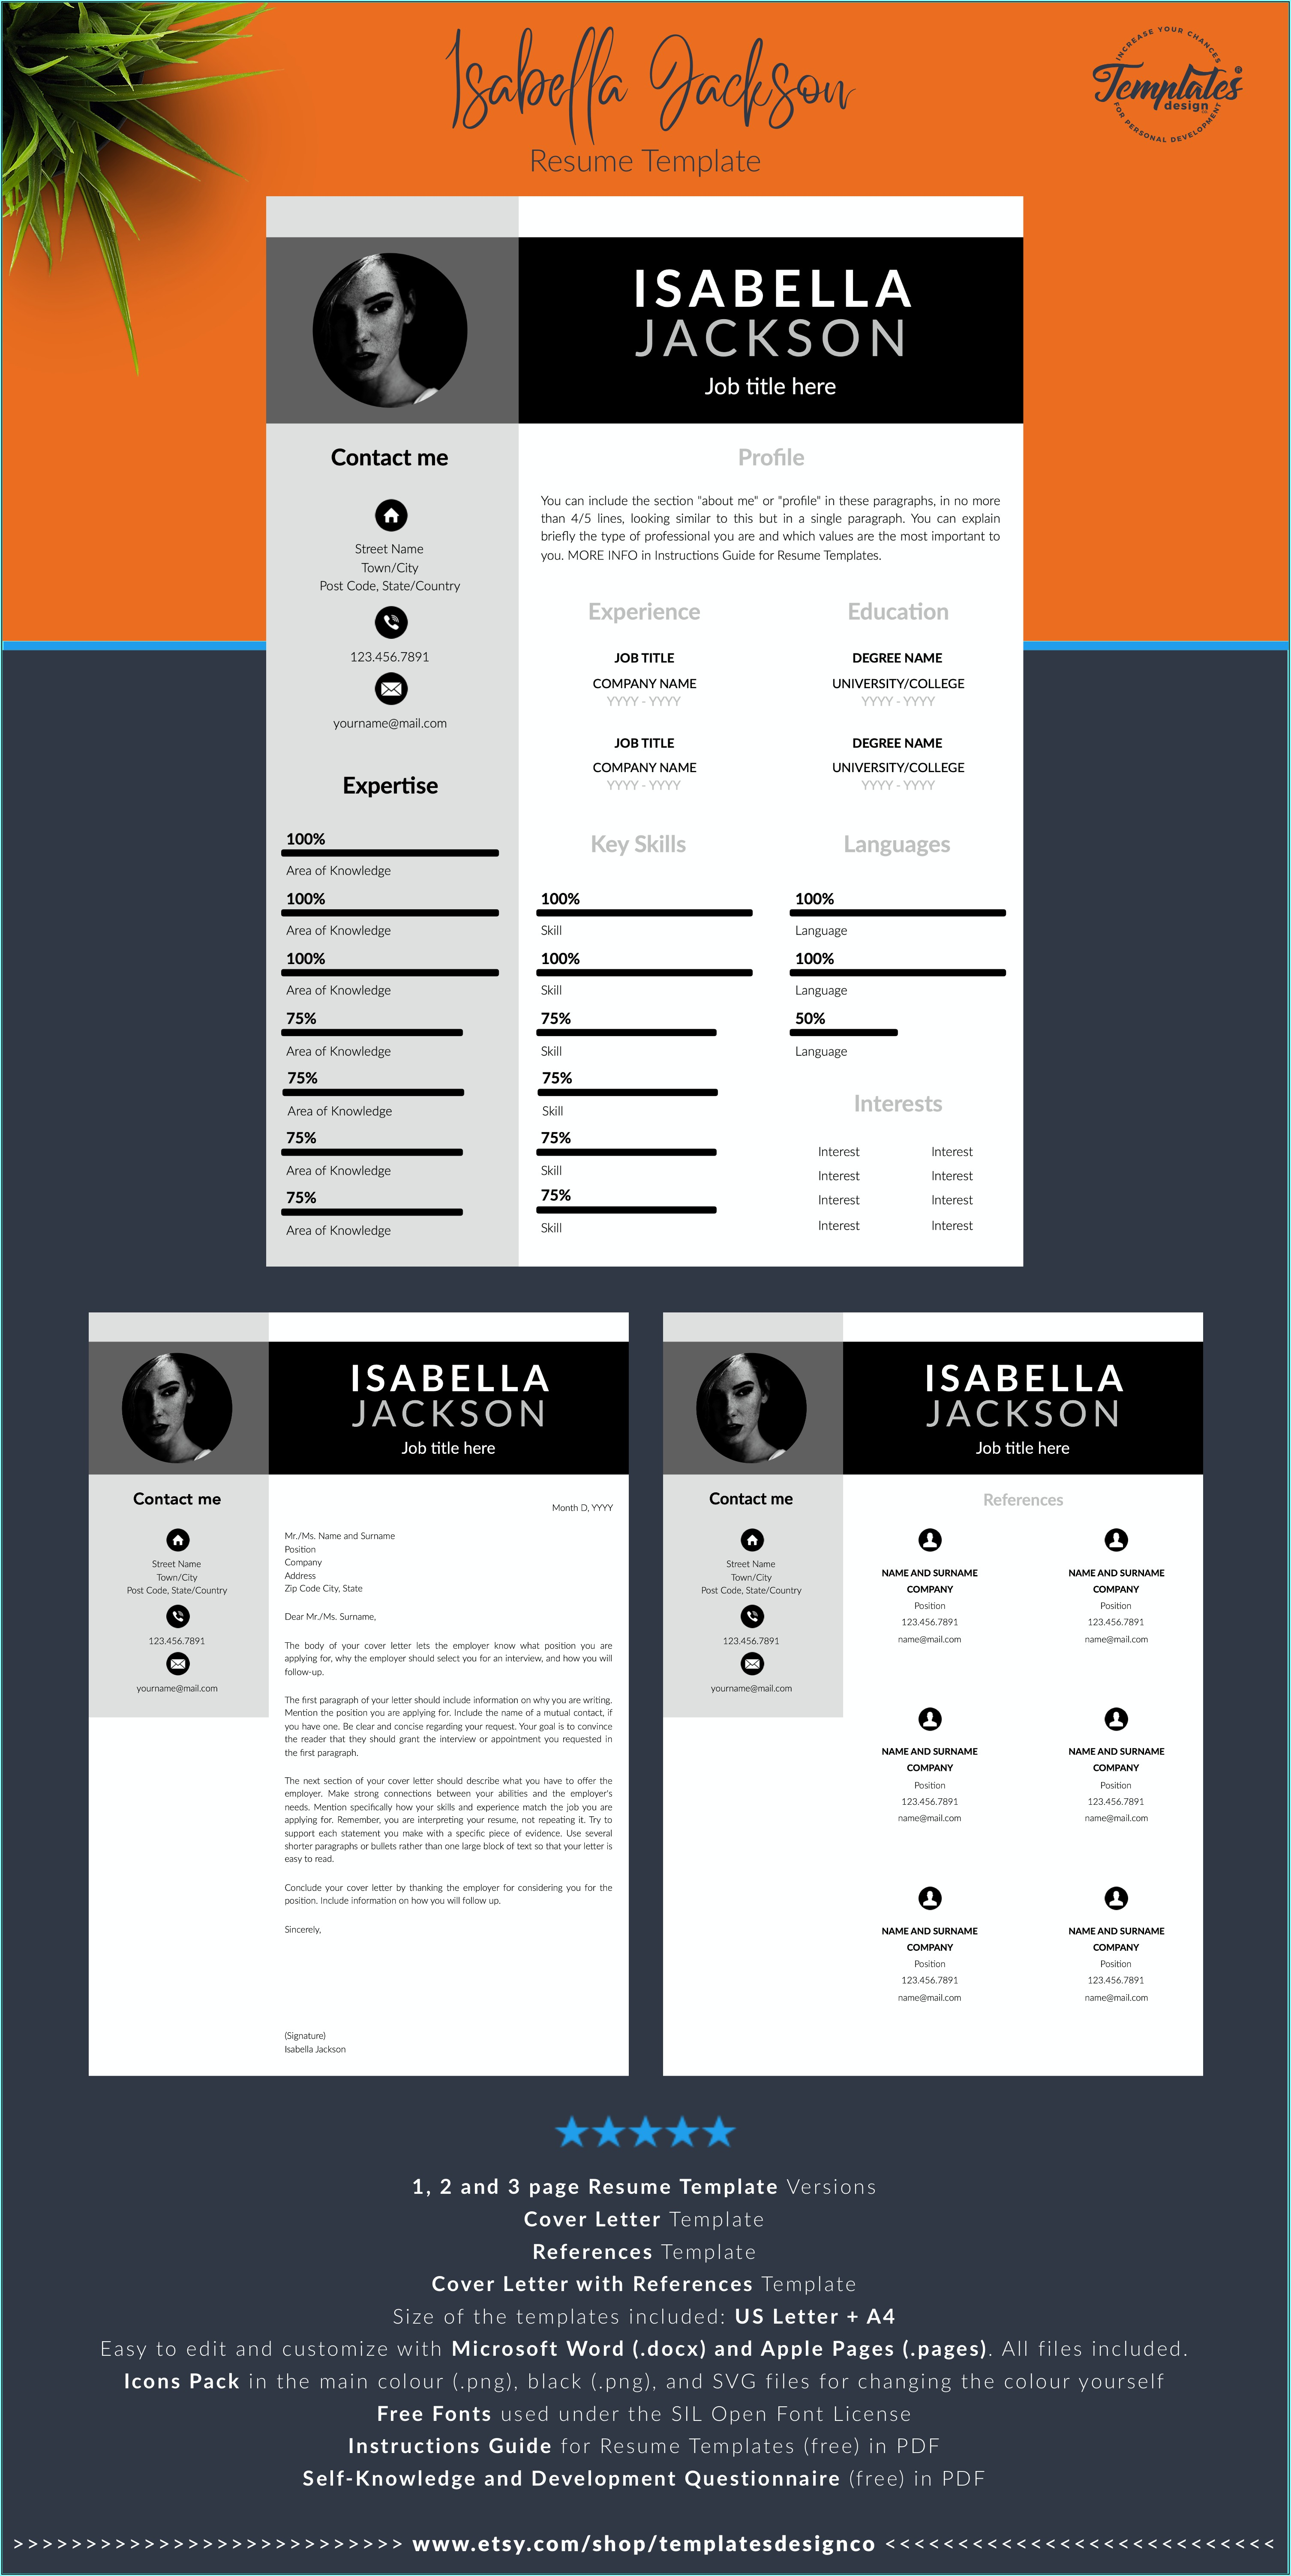 Professional Resume Template For Executives